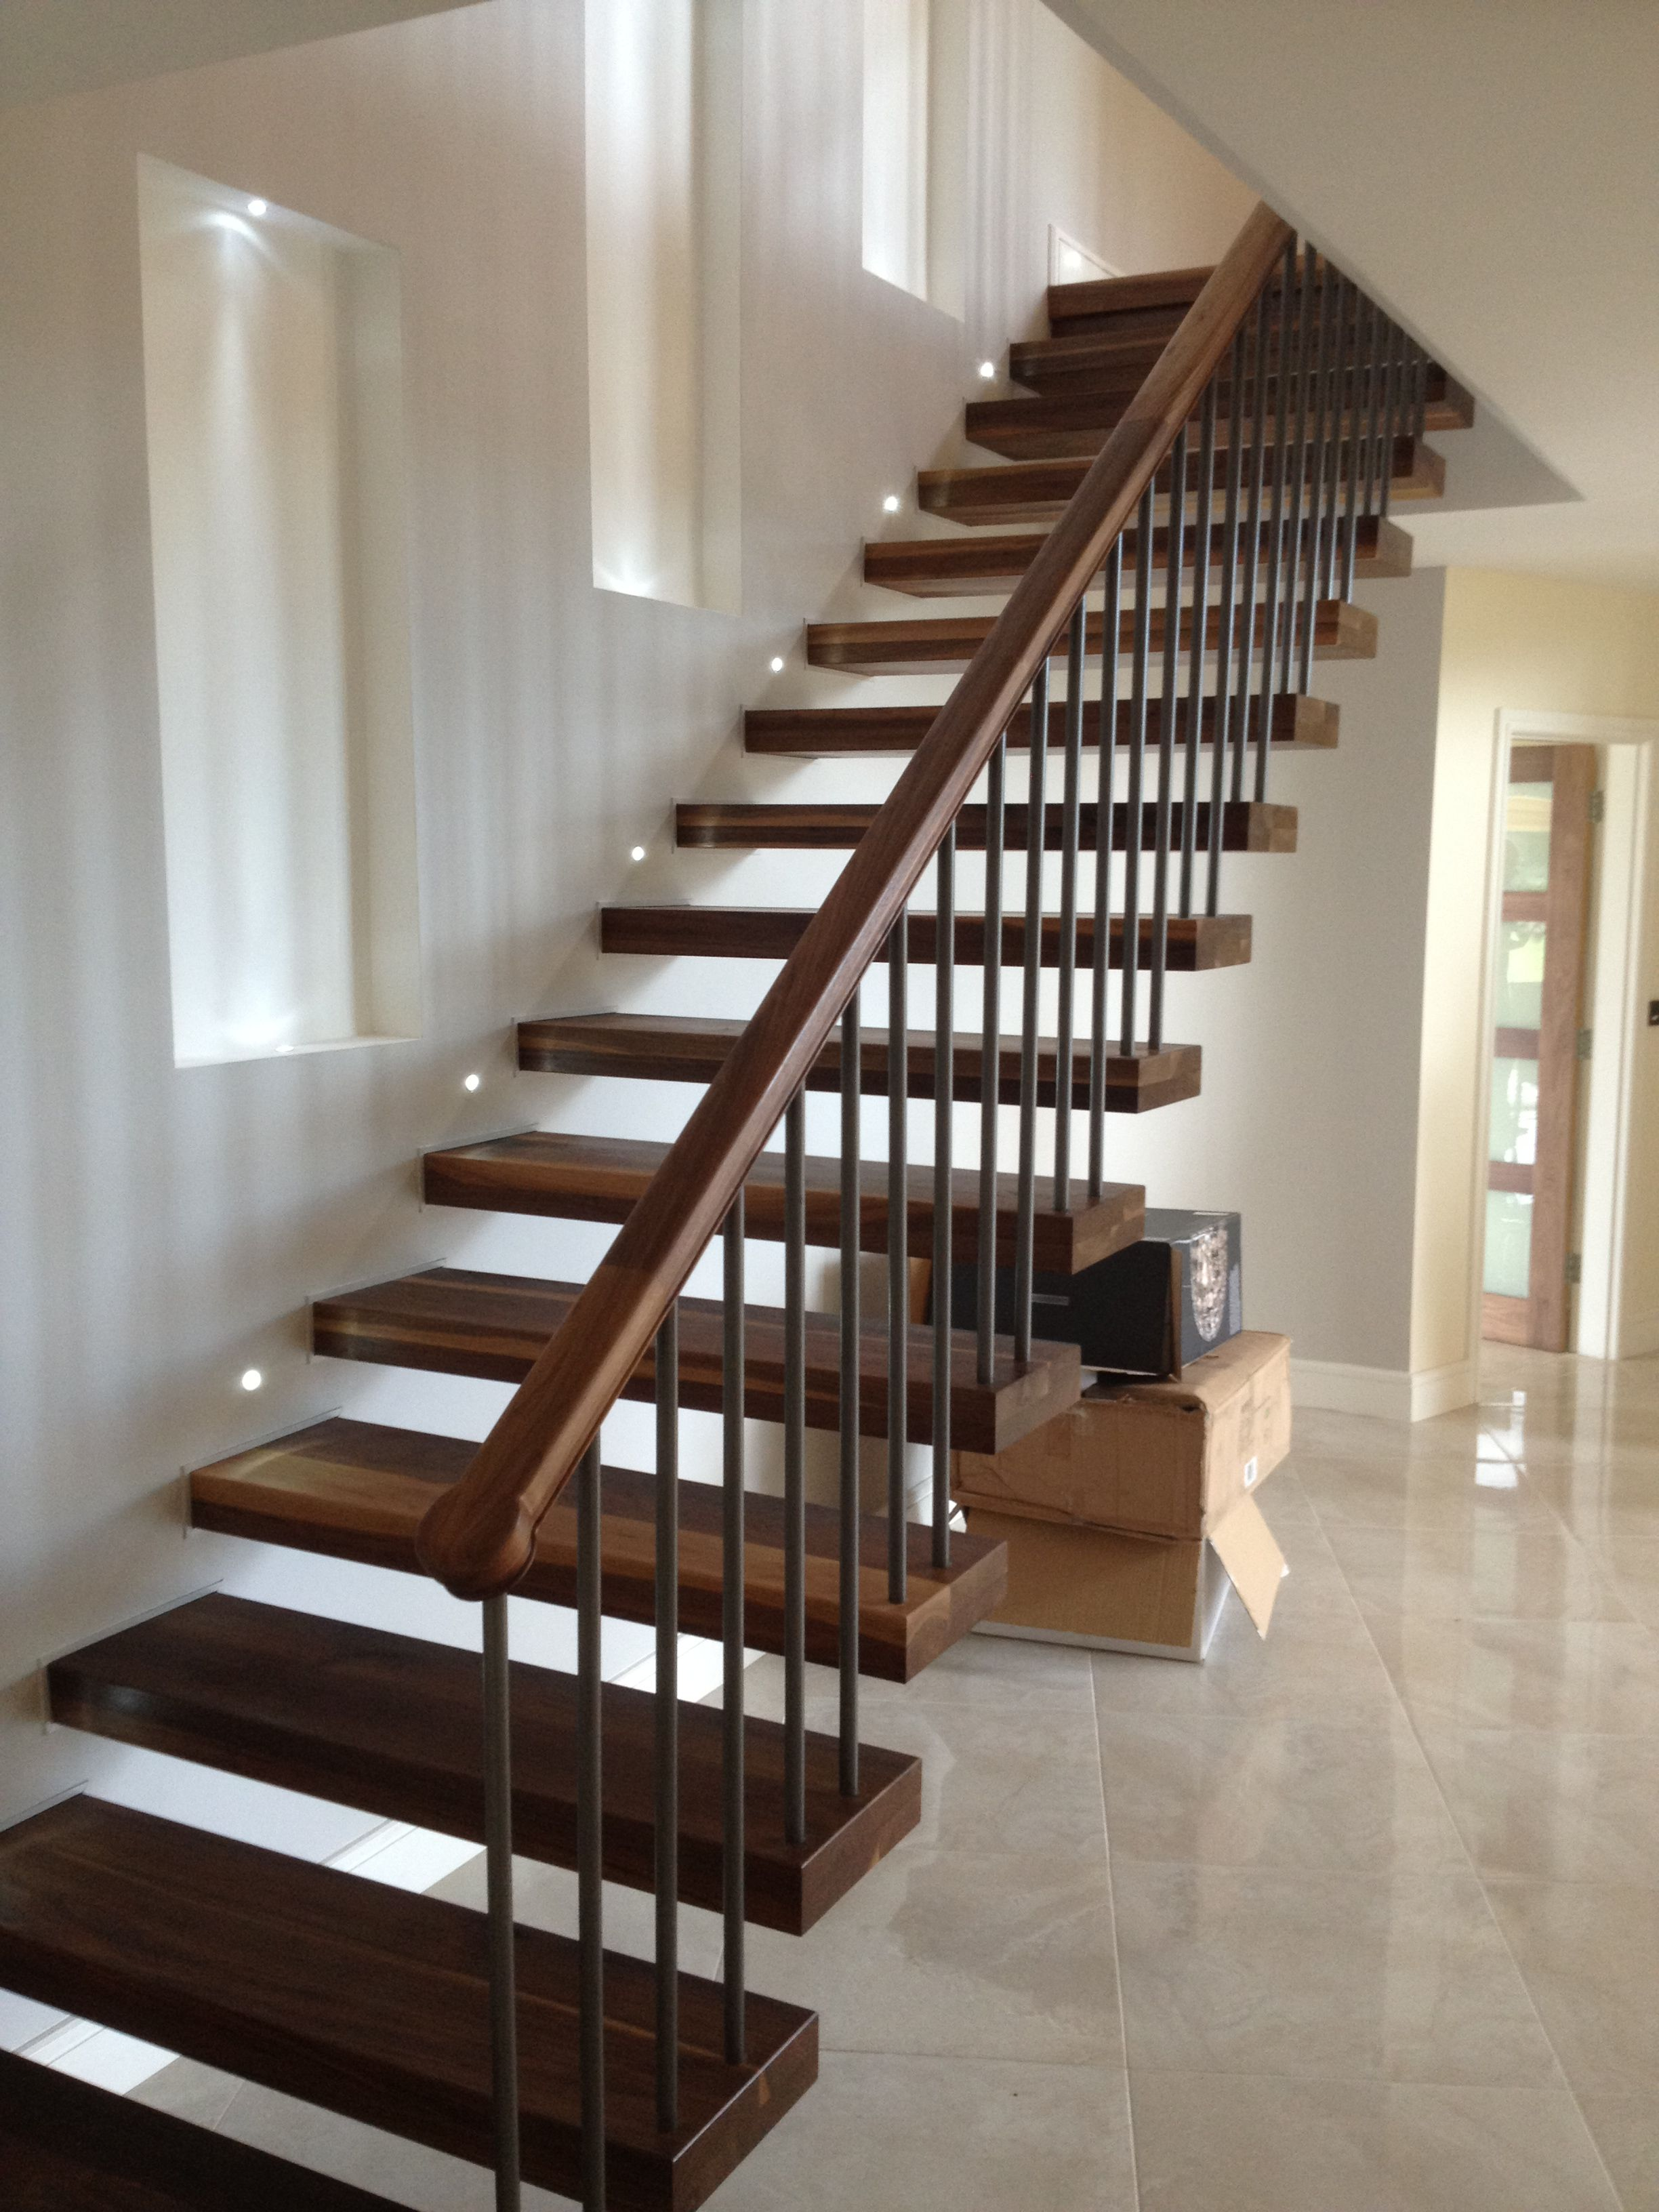 Staircase Carpet Design Ideas